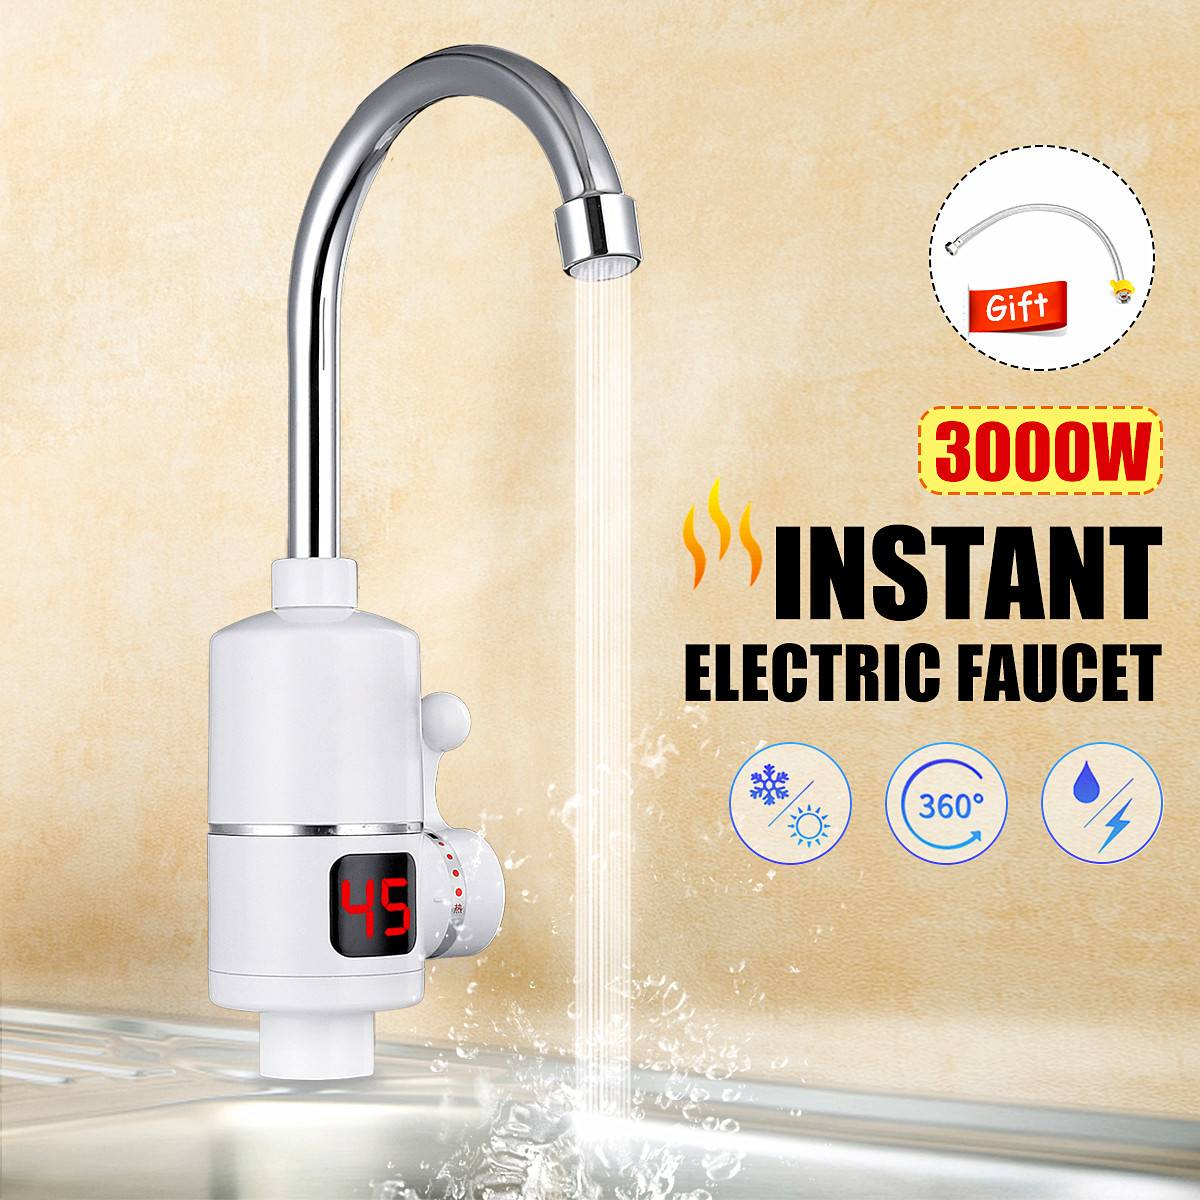 New Instant Hot/Cold Water Heater Tap Fast Thermostat For Water Heater 3000w Electrical Faucet Temperature LCD Digital Display